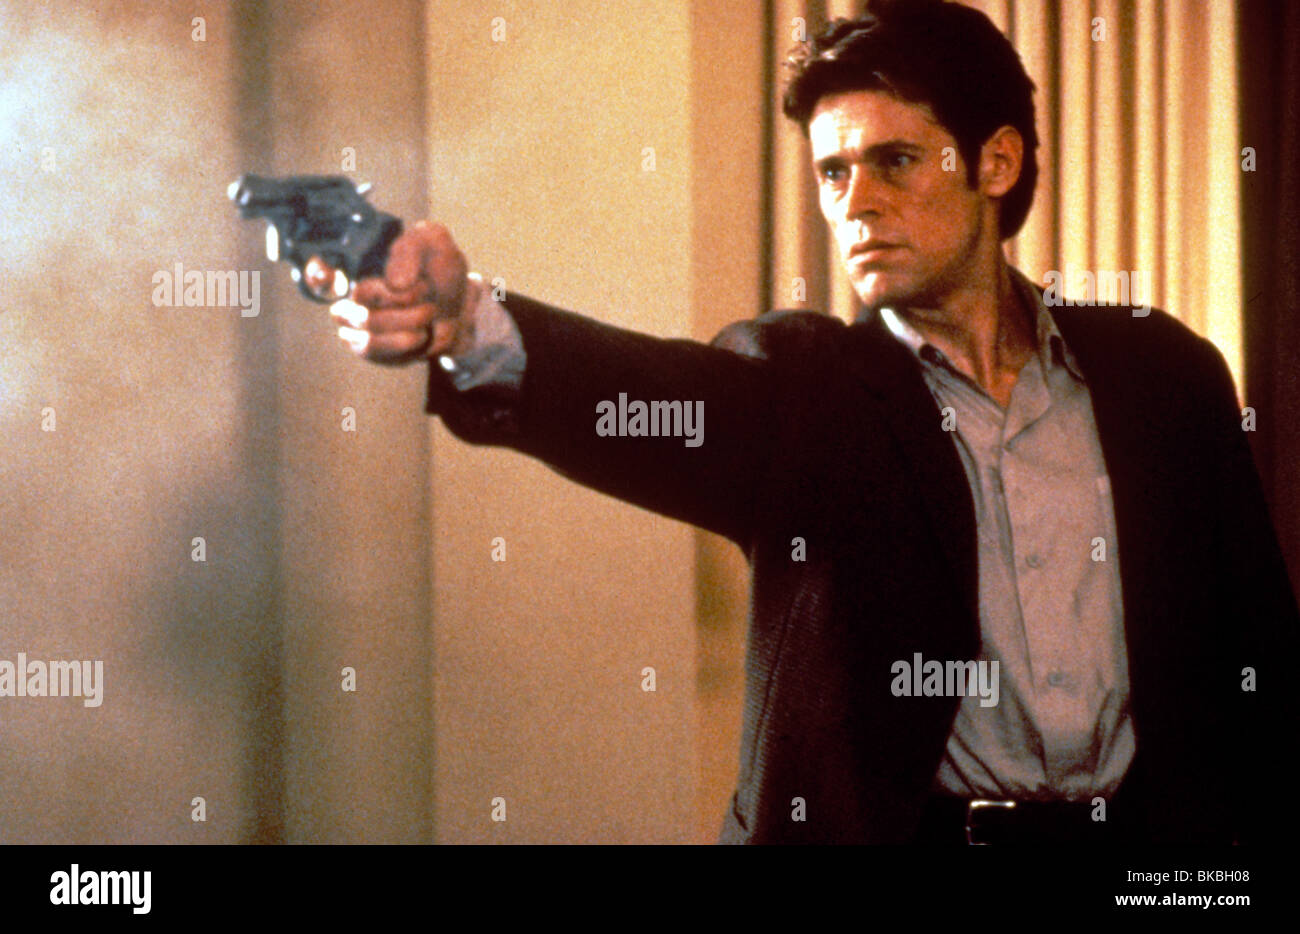 LIGHT SLEEPER -1992 WILLEM DAFOE - Stock Image